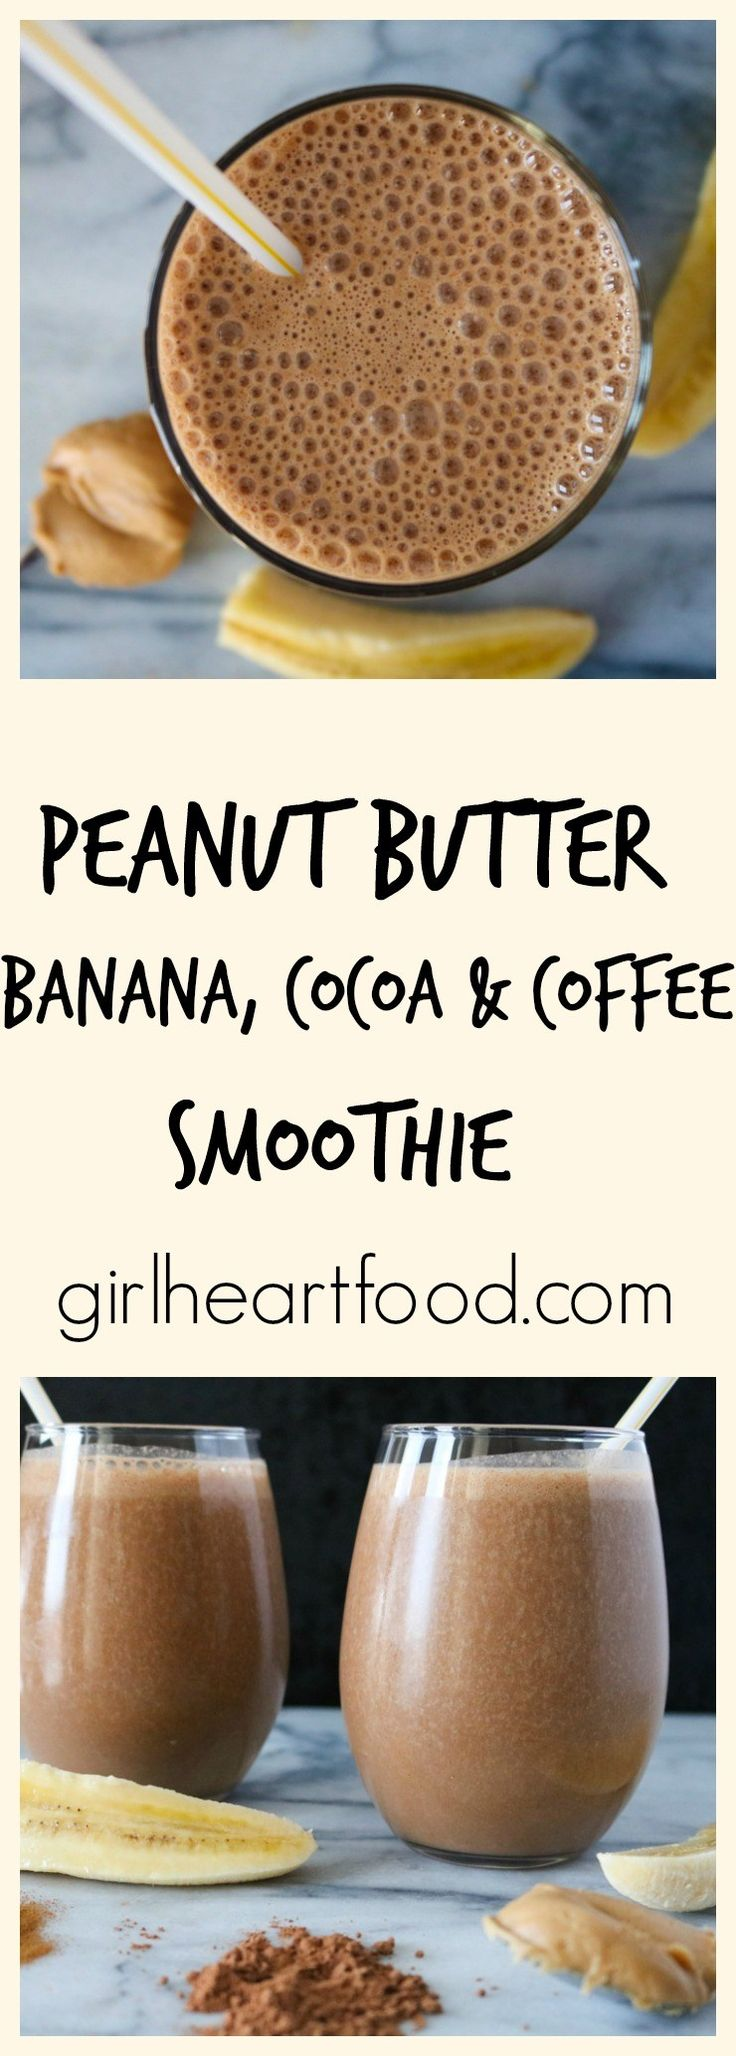 Peanut Butter, Banana, Cocoa & Coffee Smoothie - girlheartfood.com